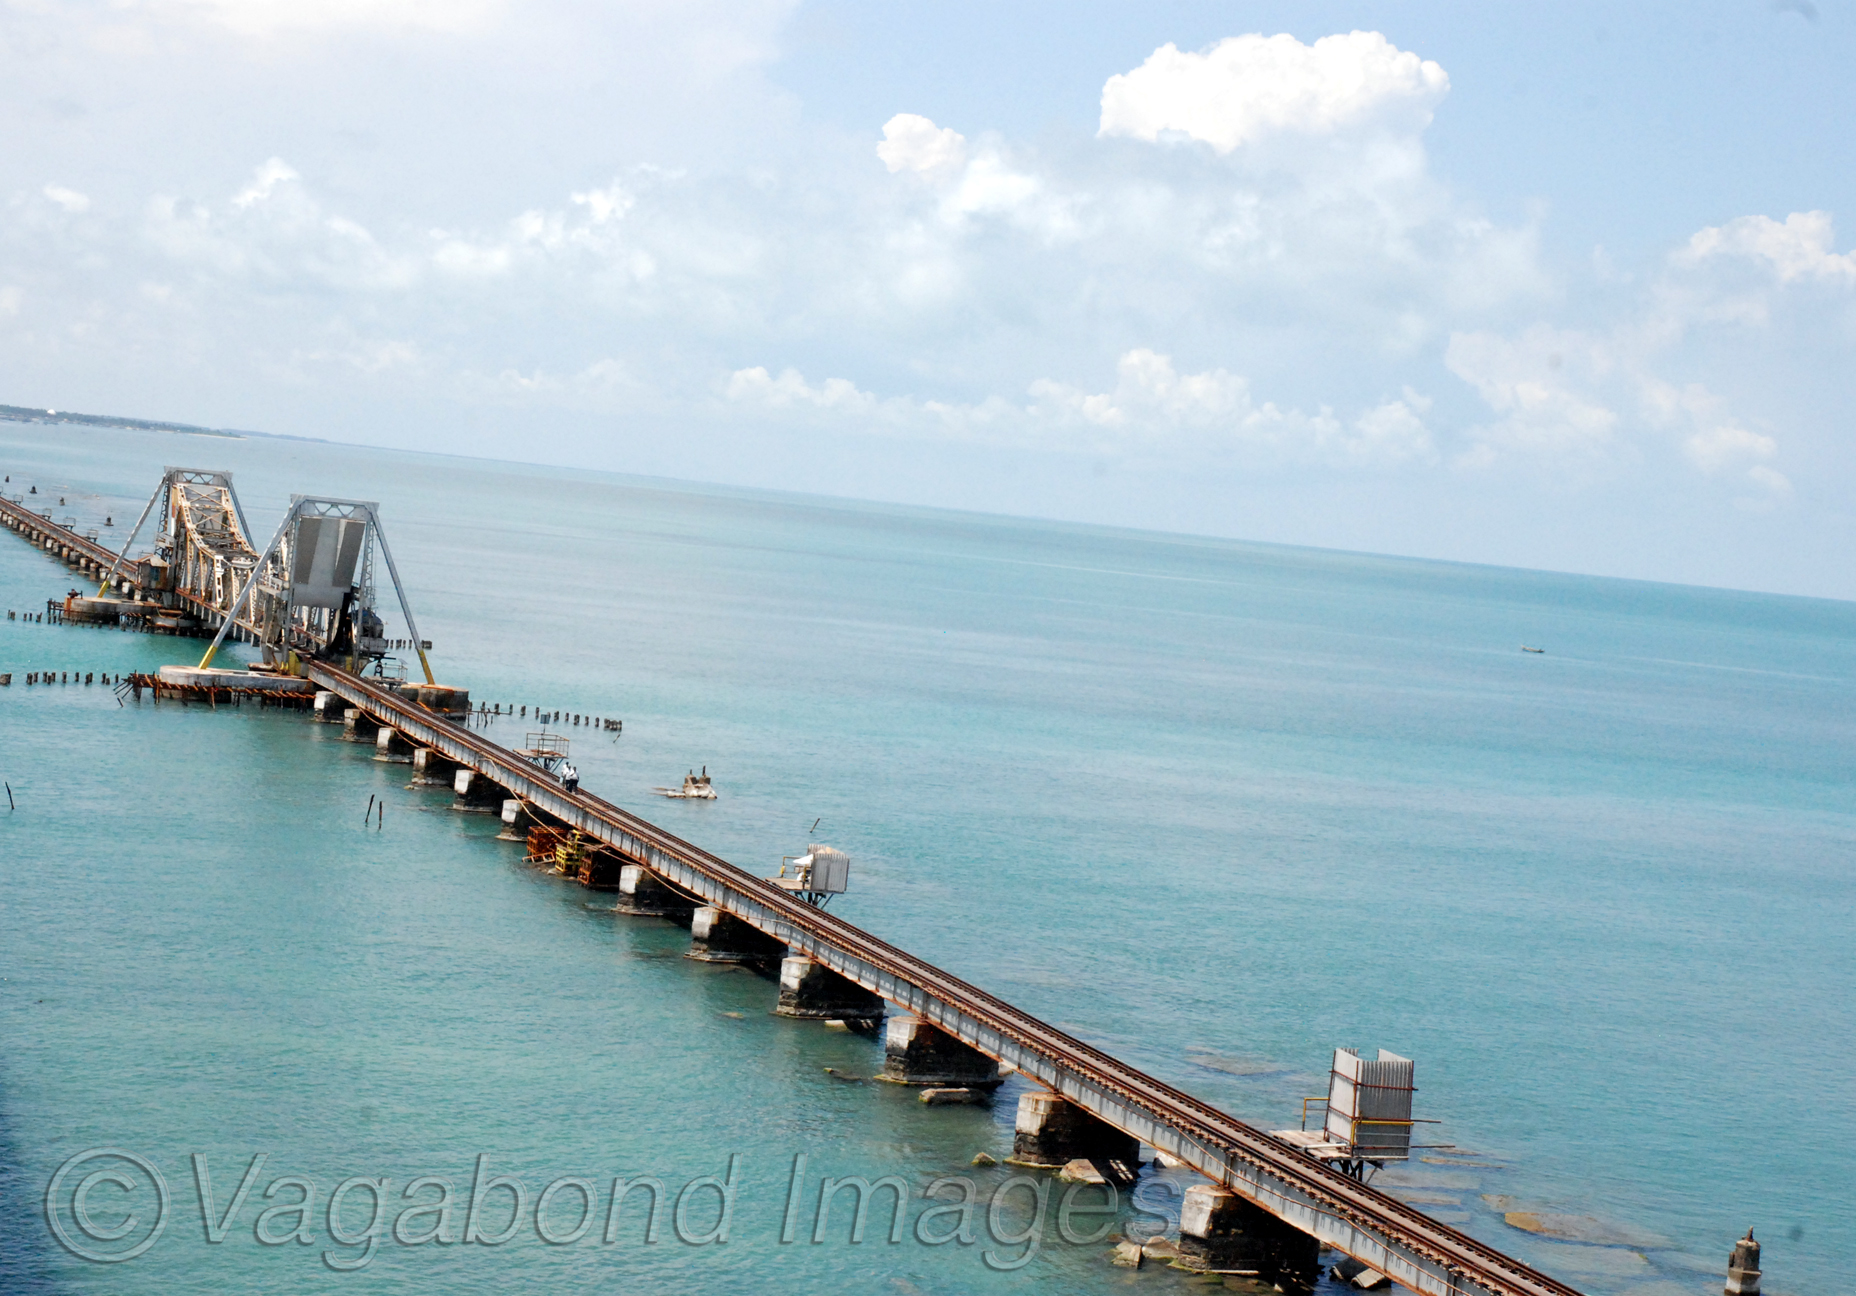 Bridge was built by Britishers to Dhanushkodi port on Pamban island